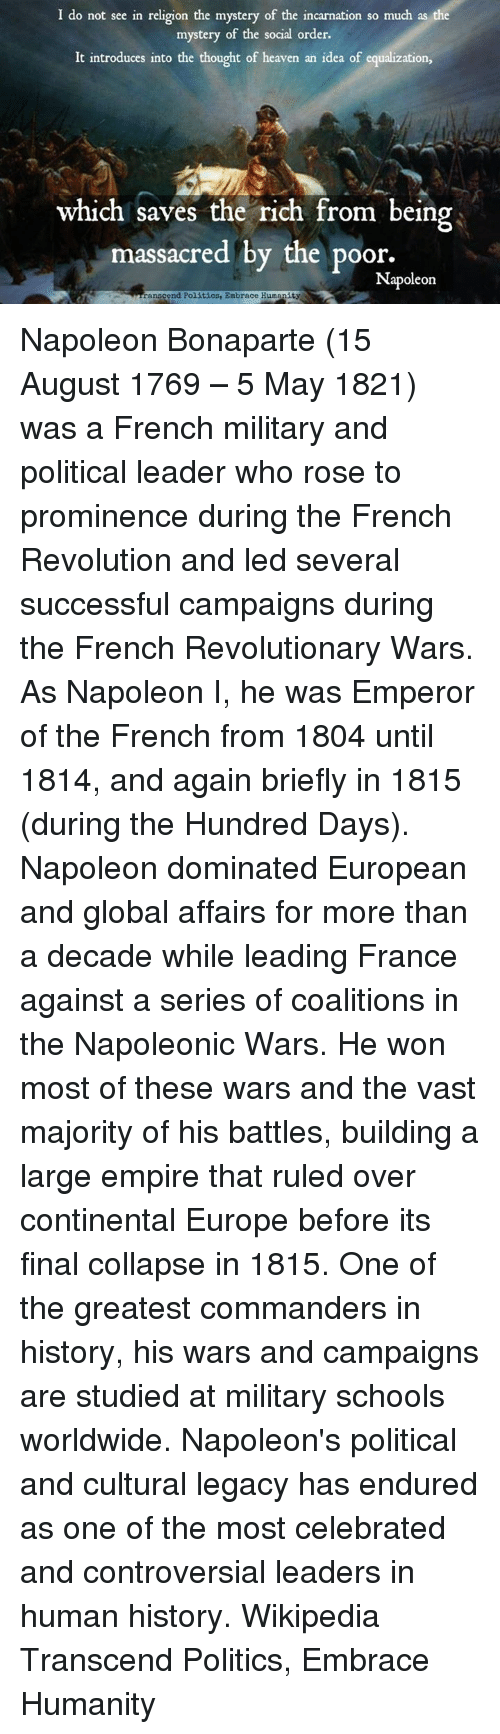 the life of napoleon bonaparte before and during his leadership Napoleon bonaparte leadership quotes subscribe napoleon bonaparte — french leader born on rapidly gaining control of continental europe before his ultimate.